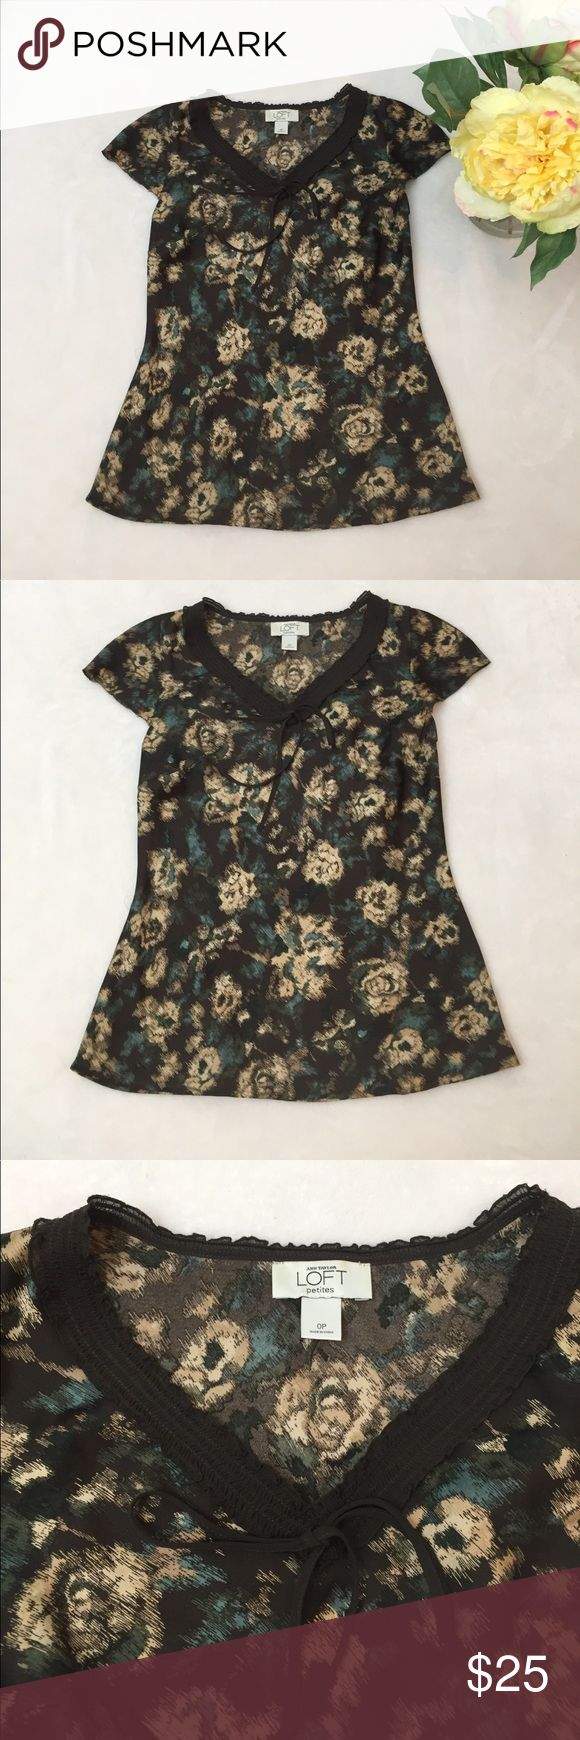 💜LOFT💜brown woman top small petite Gently wore cute brown with flowers top. 100% polyester. LOFT Tops Crop Tops